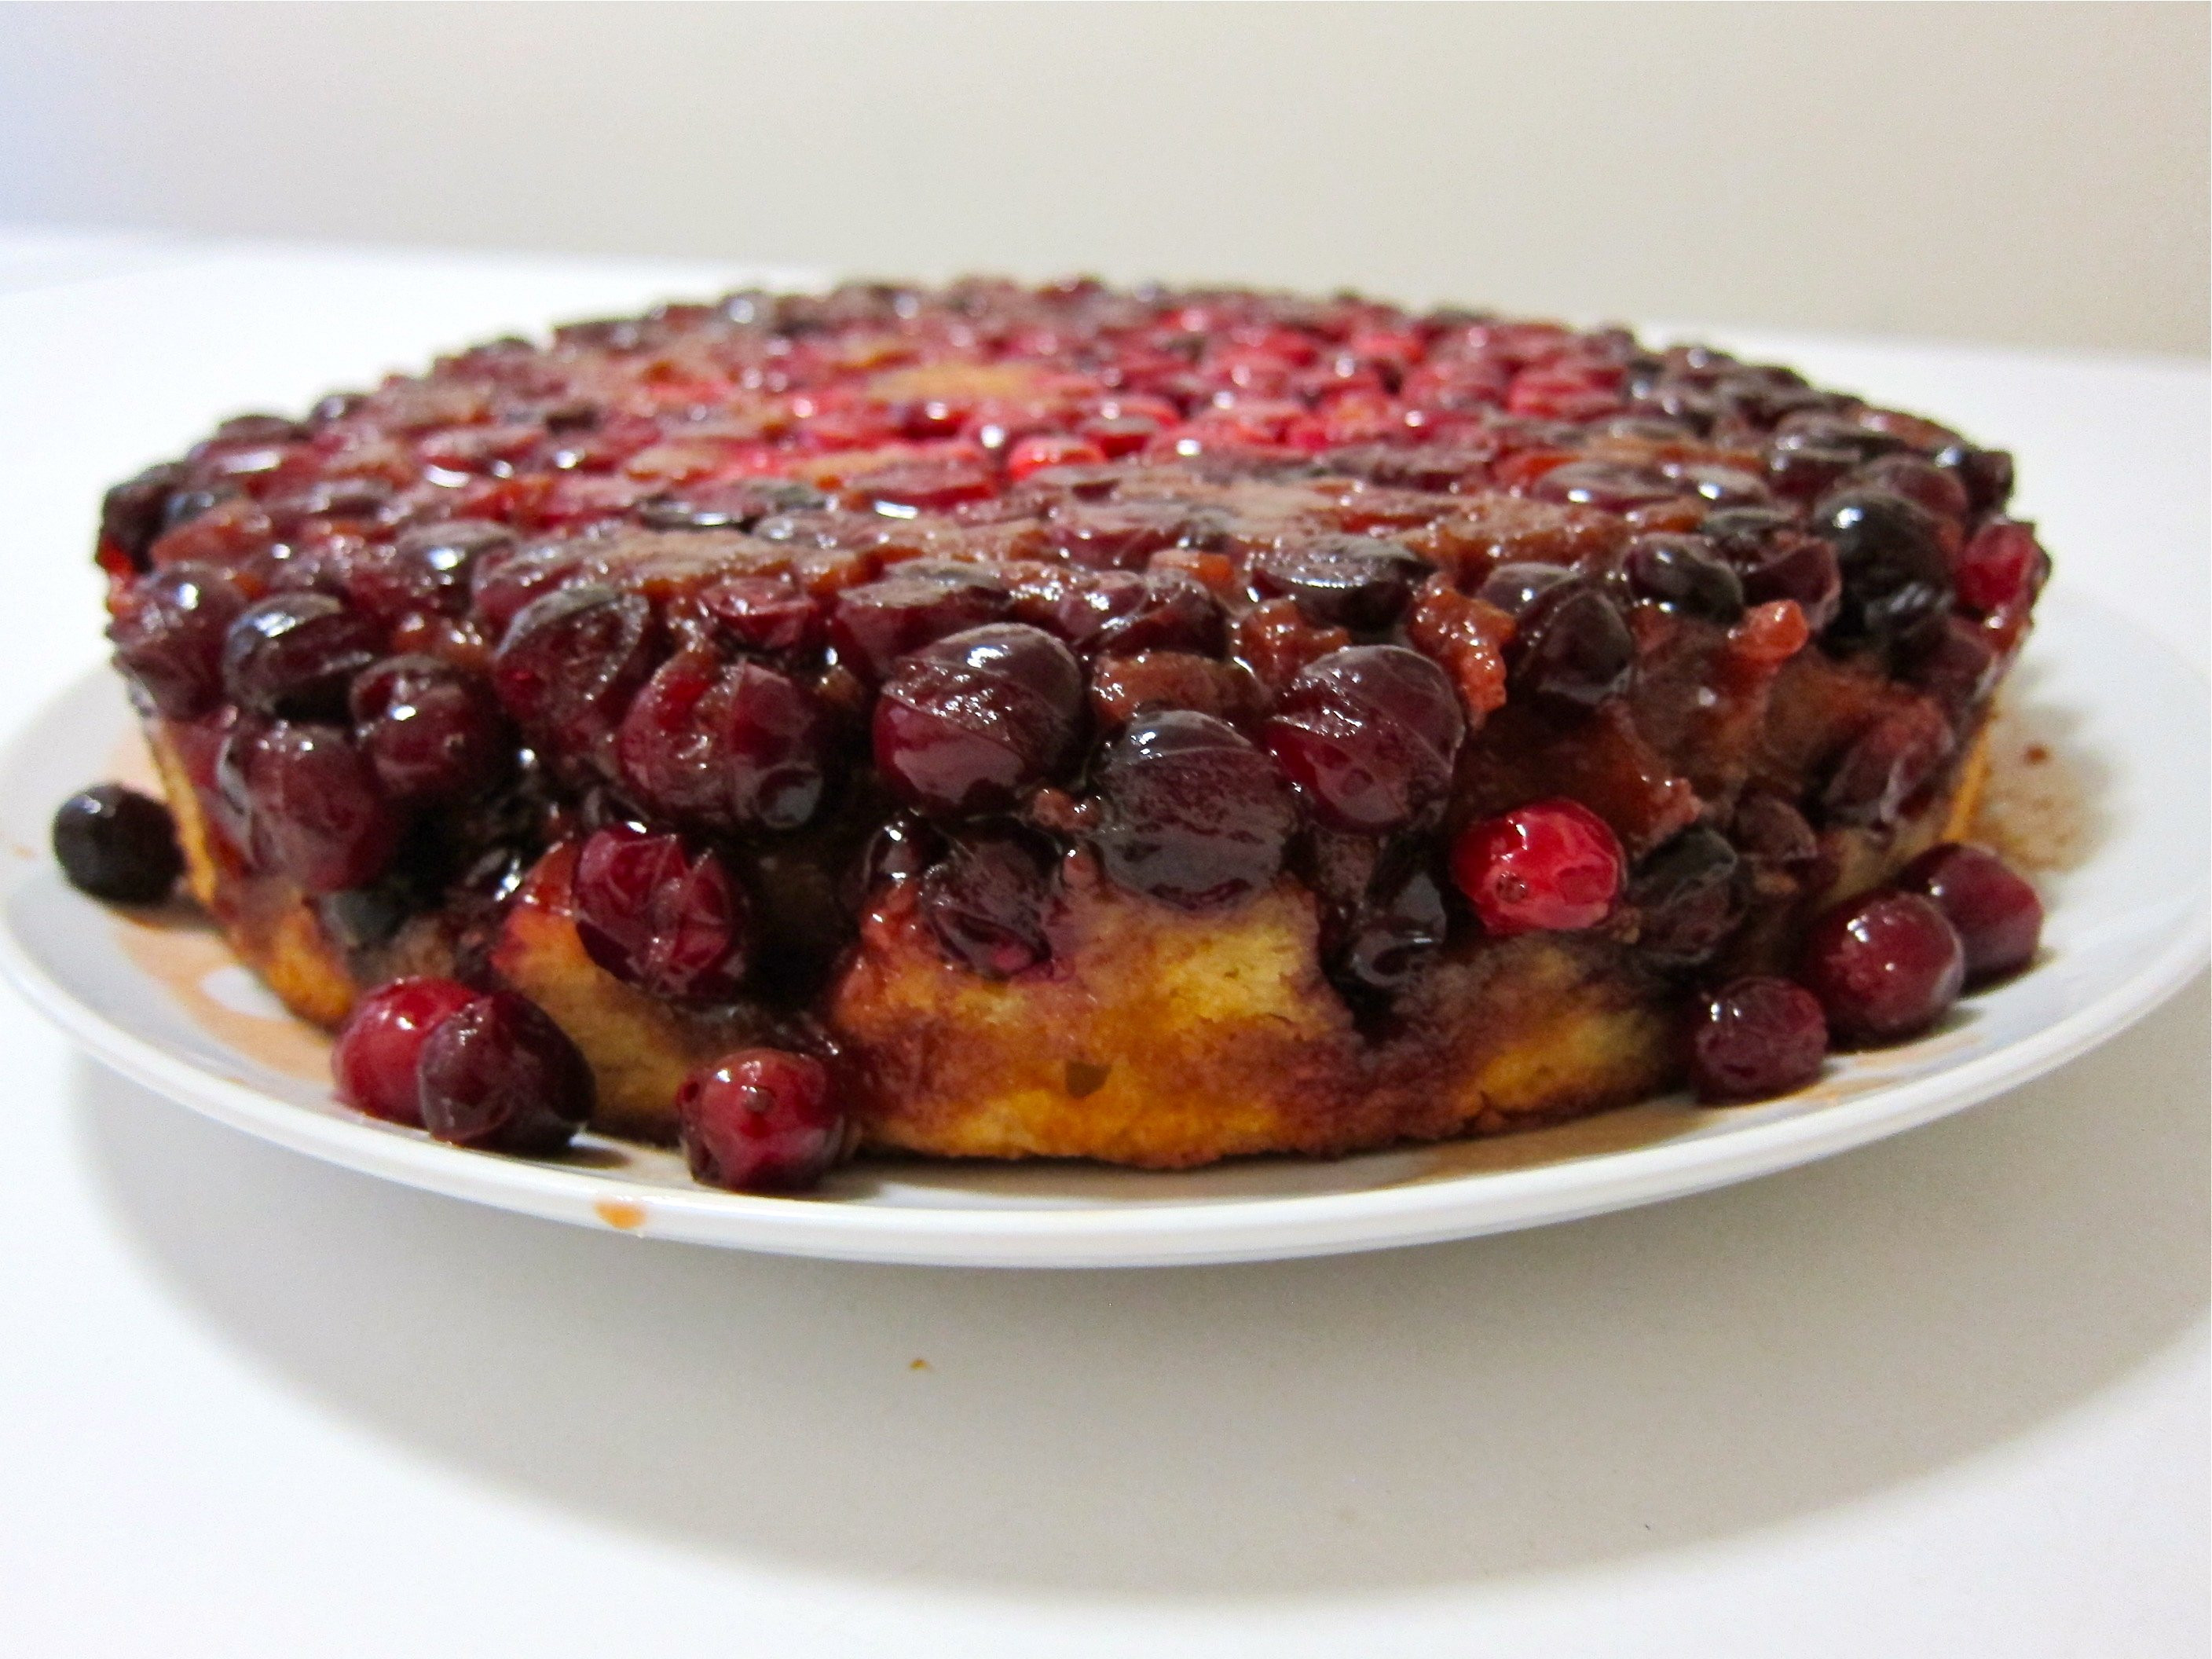 Smitten Kitchen Thanksgiving  Cranberry Syrup And An Intensely Almond Cake Smitten